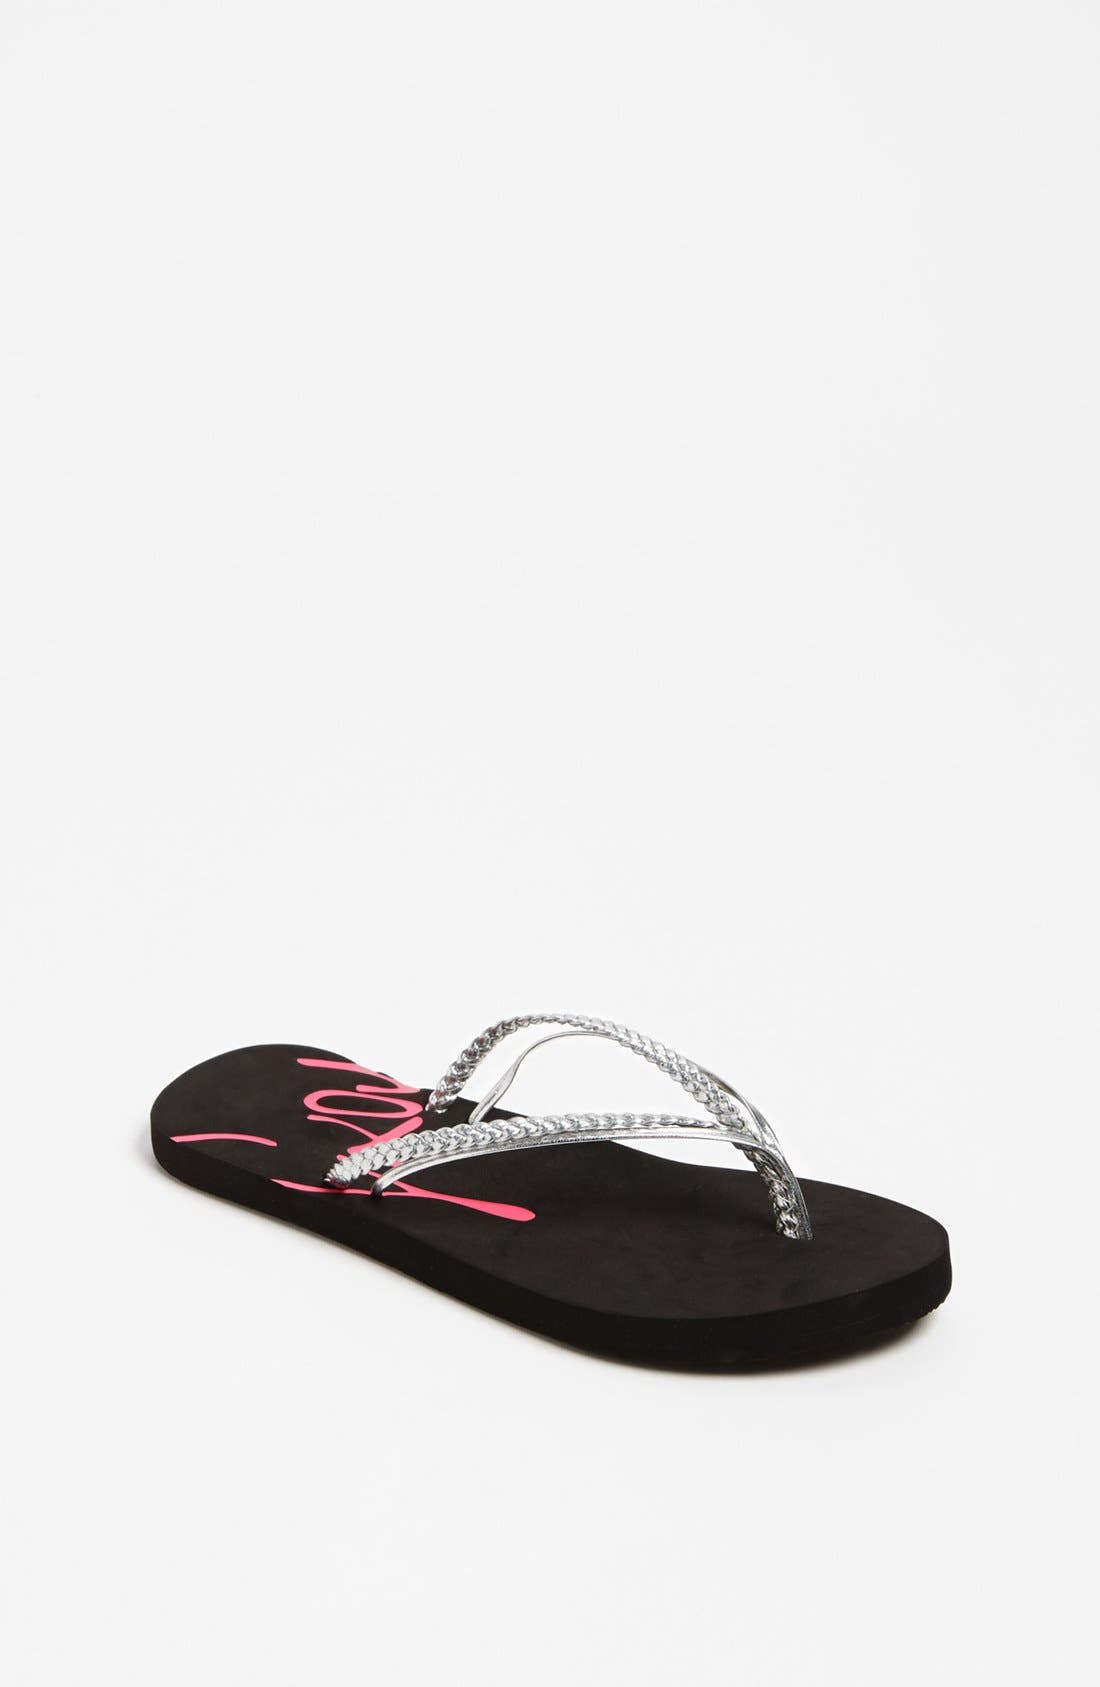 Main Image - Roxy 'RG Rio' Flip Flop (Toddler, Little Kids & Big Kid)